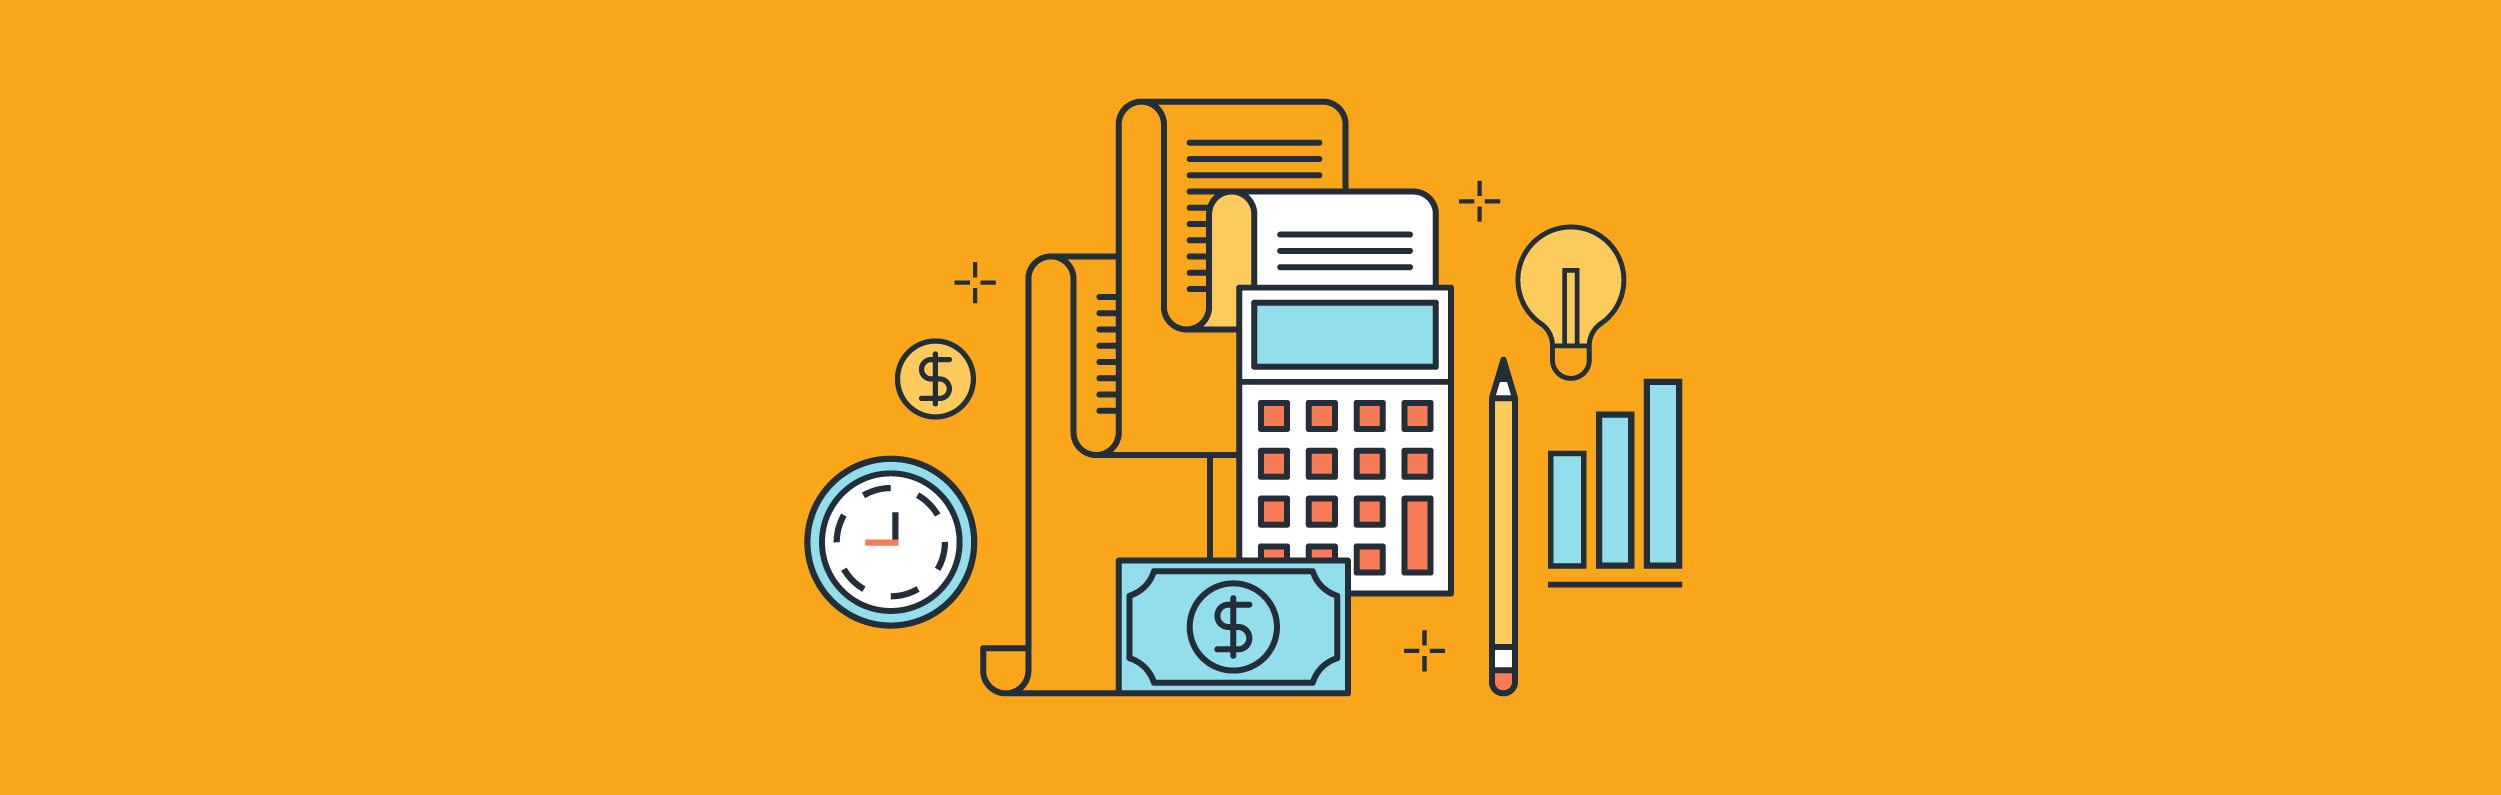 Tax illustration with a clock, calculator, pencil, paper and more.